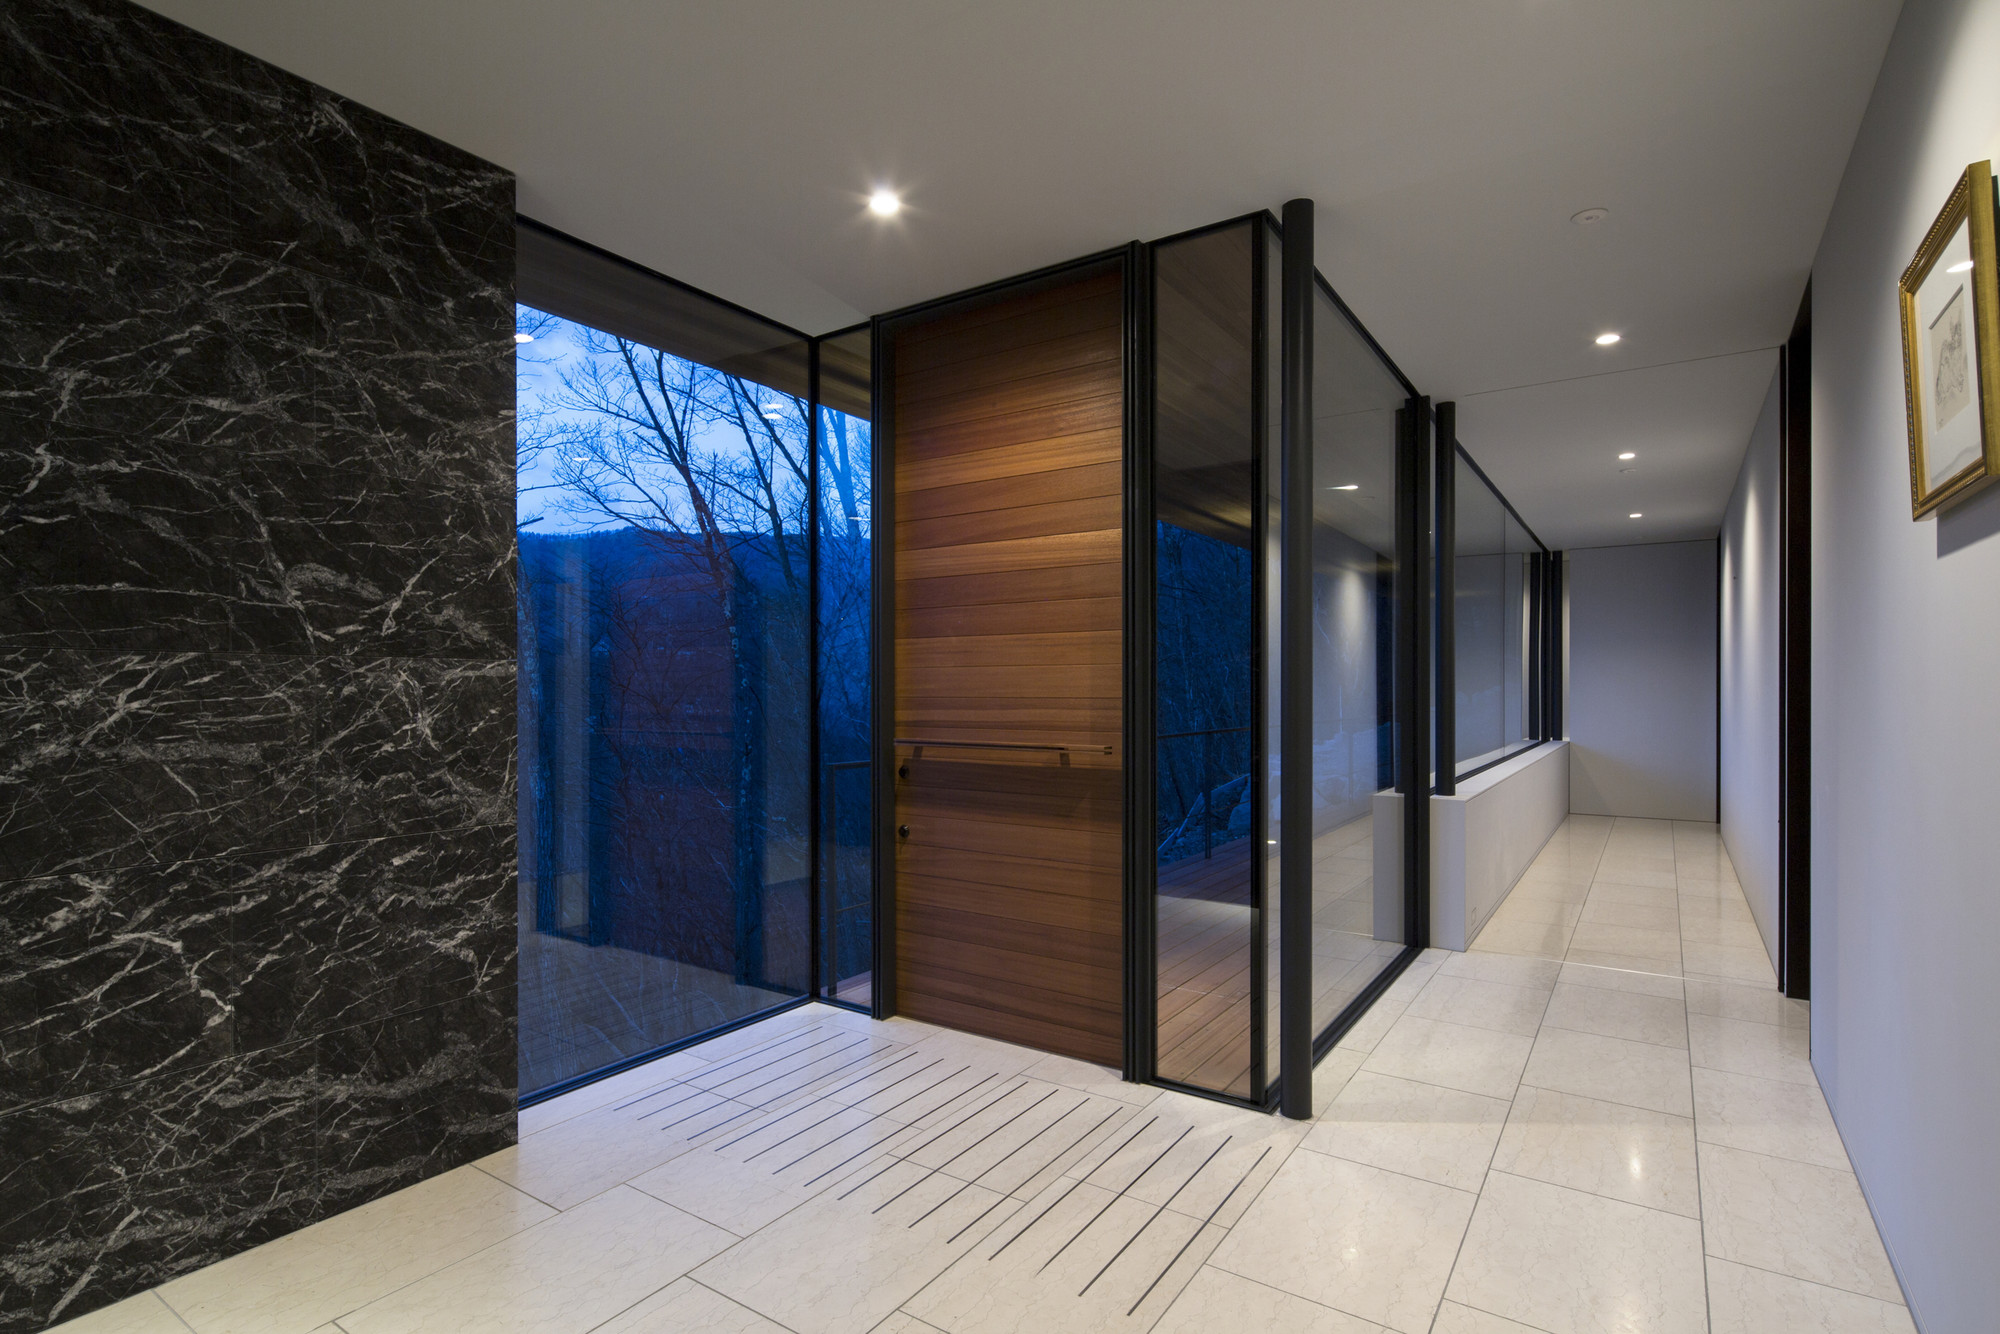 gallery of house in yatsugatake kidosaki architects studio 27. Black Bedroom Furniture Sets. Home Design Ideas